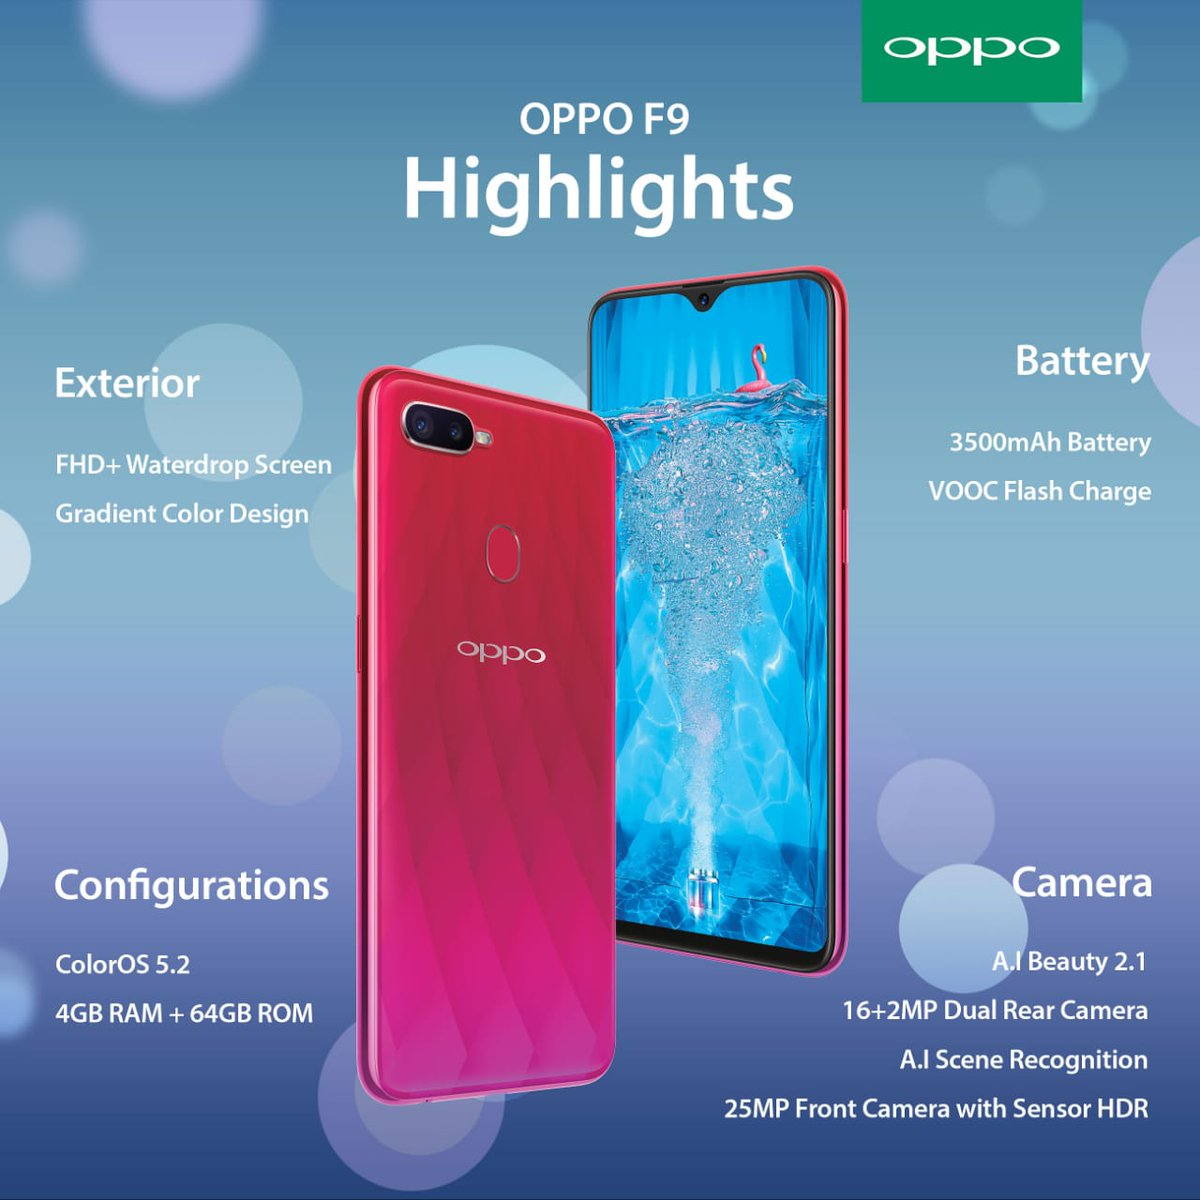 Kirutit Rono On Twitter Oppo F9 Is Powered By A 3500mah Battery Blue Ram 4gb 64gb 1 Reply 7 Retweets 3 Likes